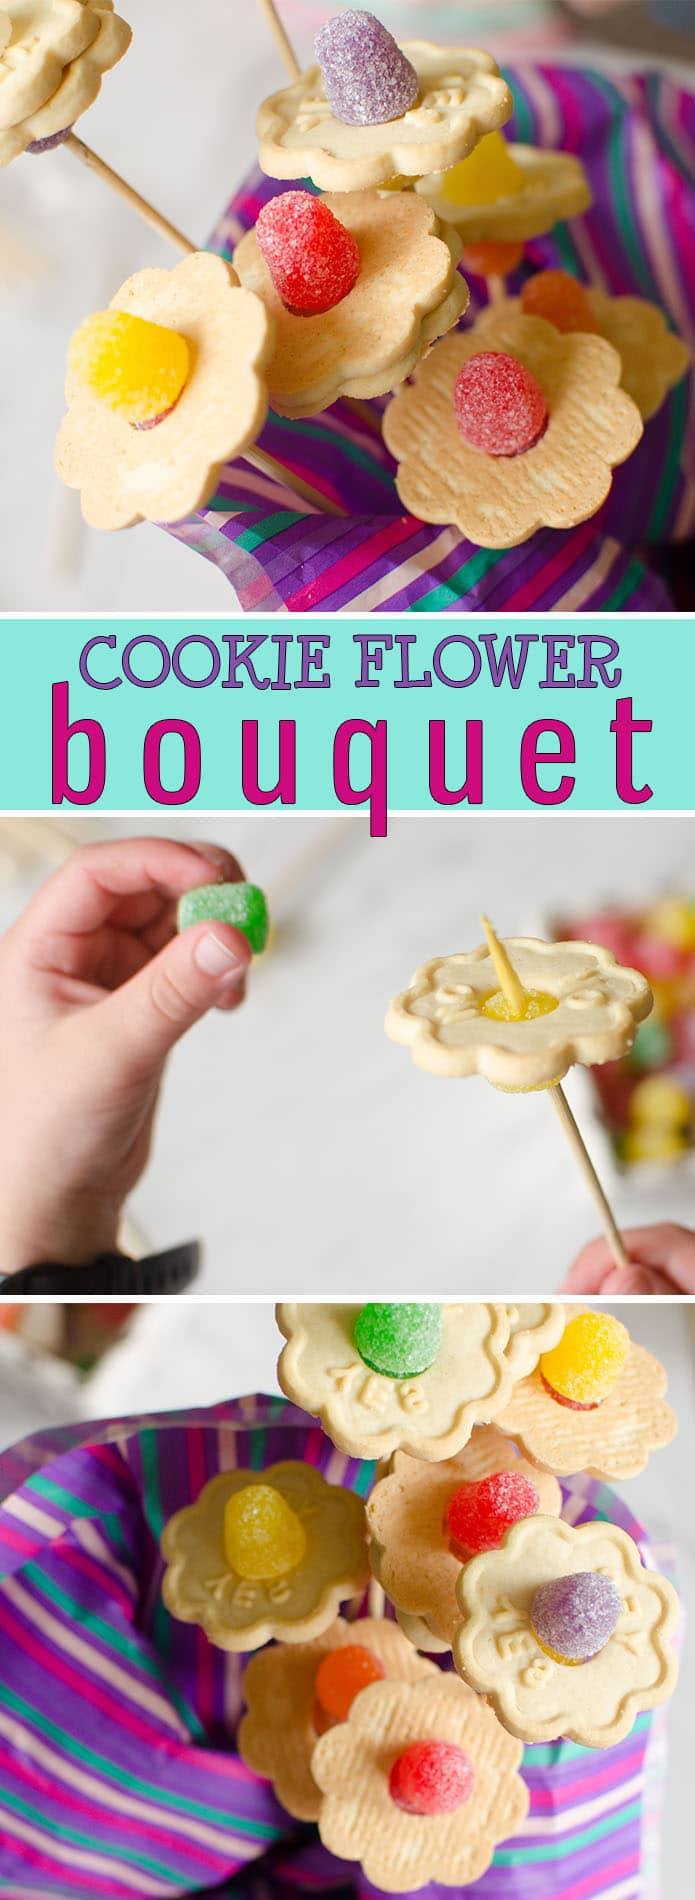 This adorable cookie flower bouquet is a great Mother's Day gift for kids who love to give homemade. What mom or grandma wouldn't love to receive such a thoughtful and delicious gift from a child on their special day. #MothersDayGift #MothersDayActivity #KidMade #Cookies #Flowers #Tasty #Delicious #MothersDayIdeas #KidsCrafts #KidsActivities #FlowerCraft #FunTreats #HappyHooligans